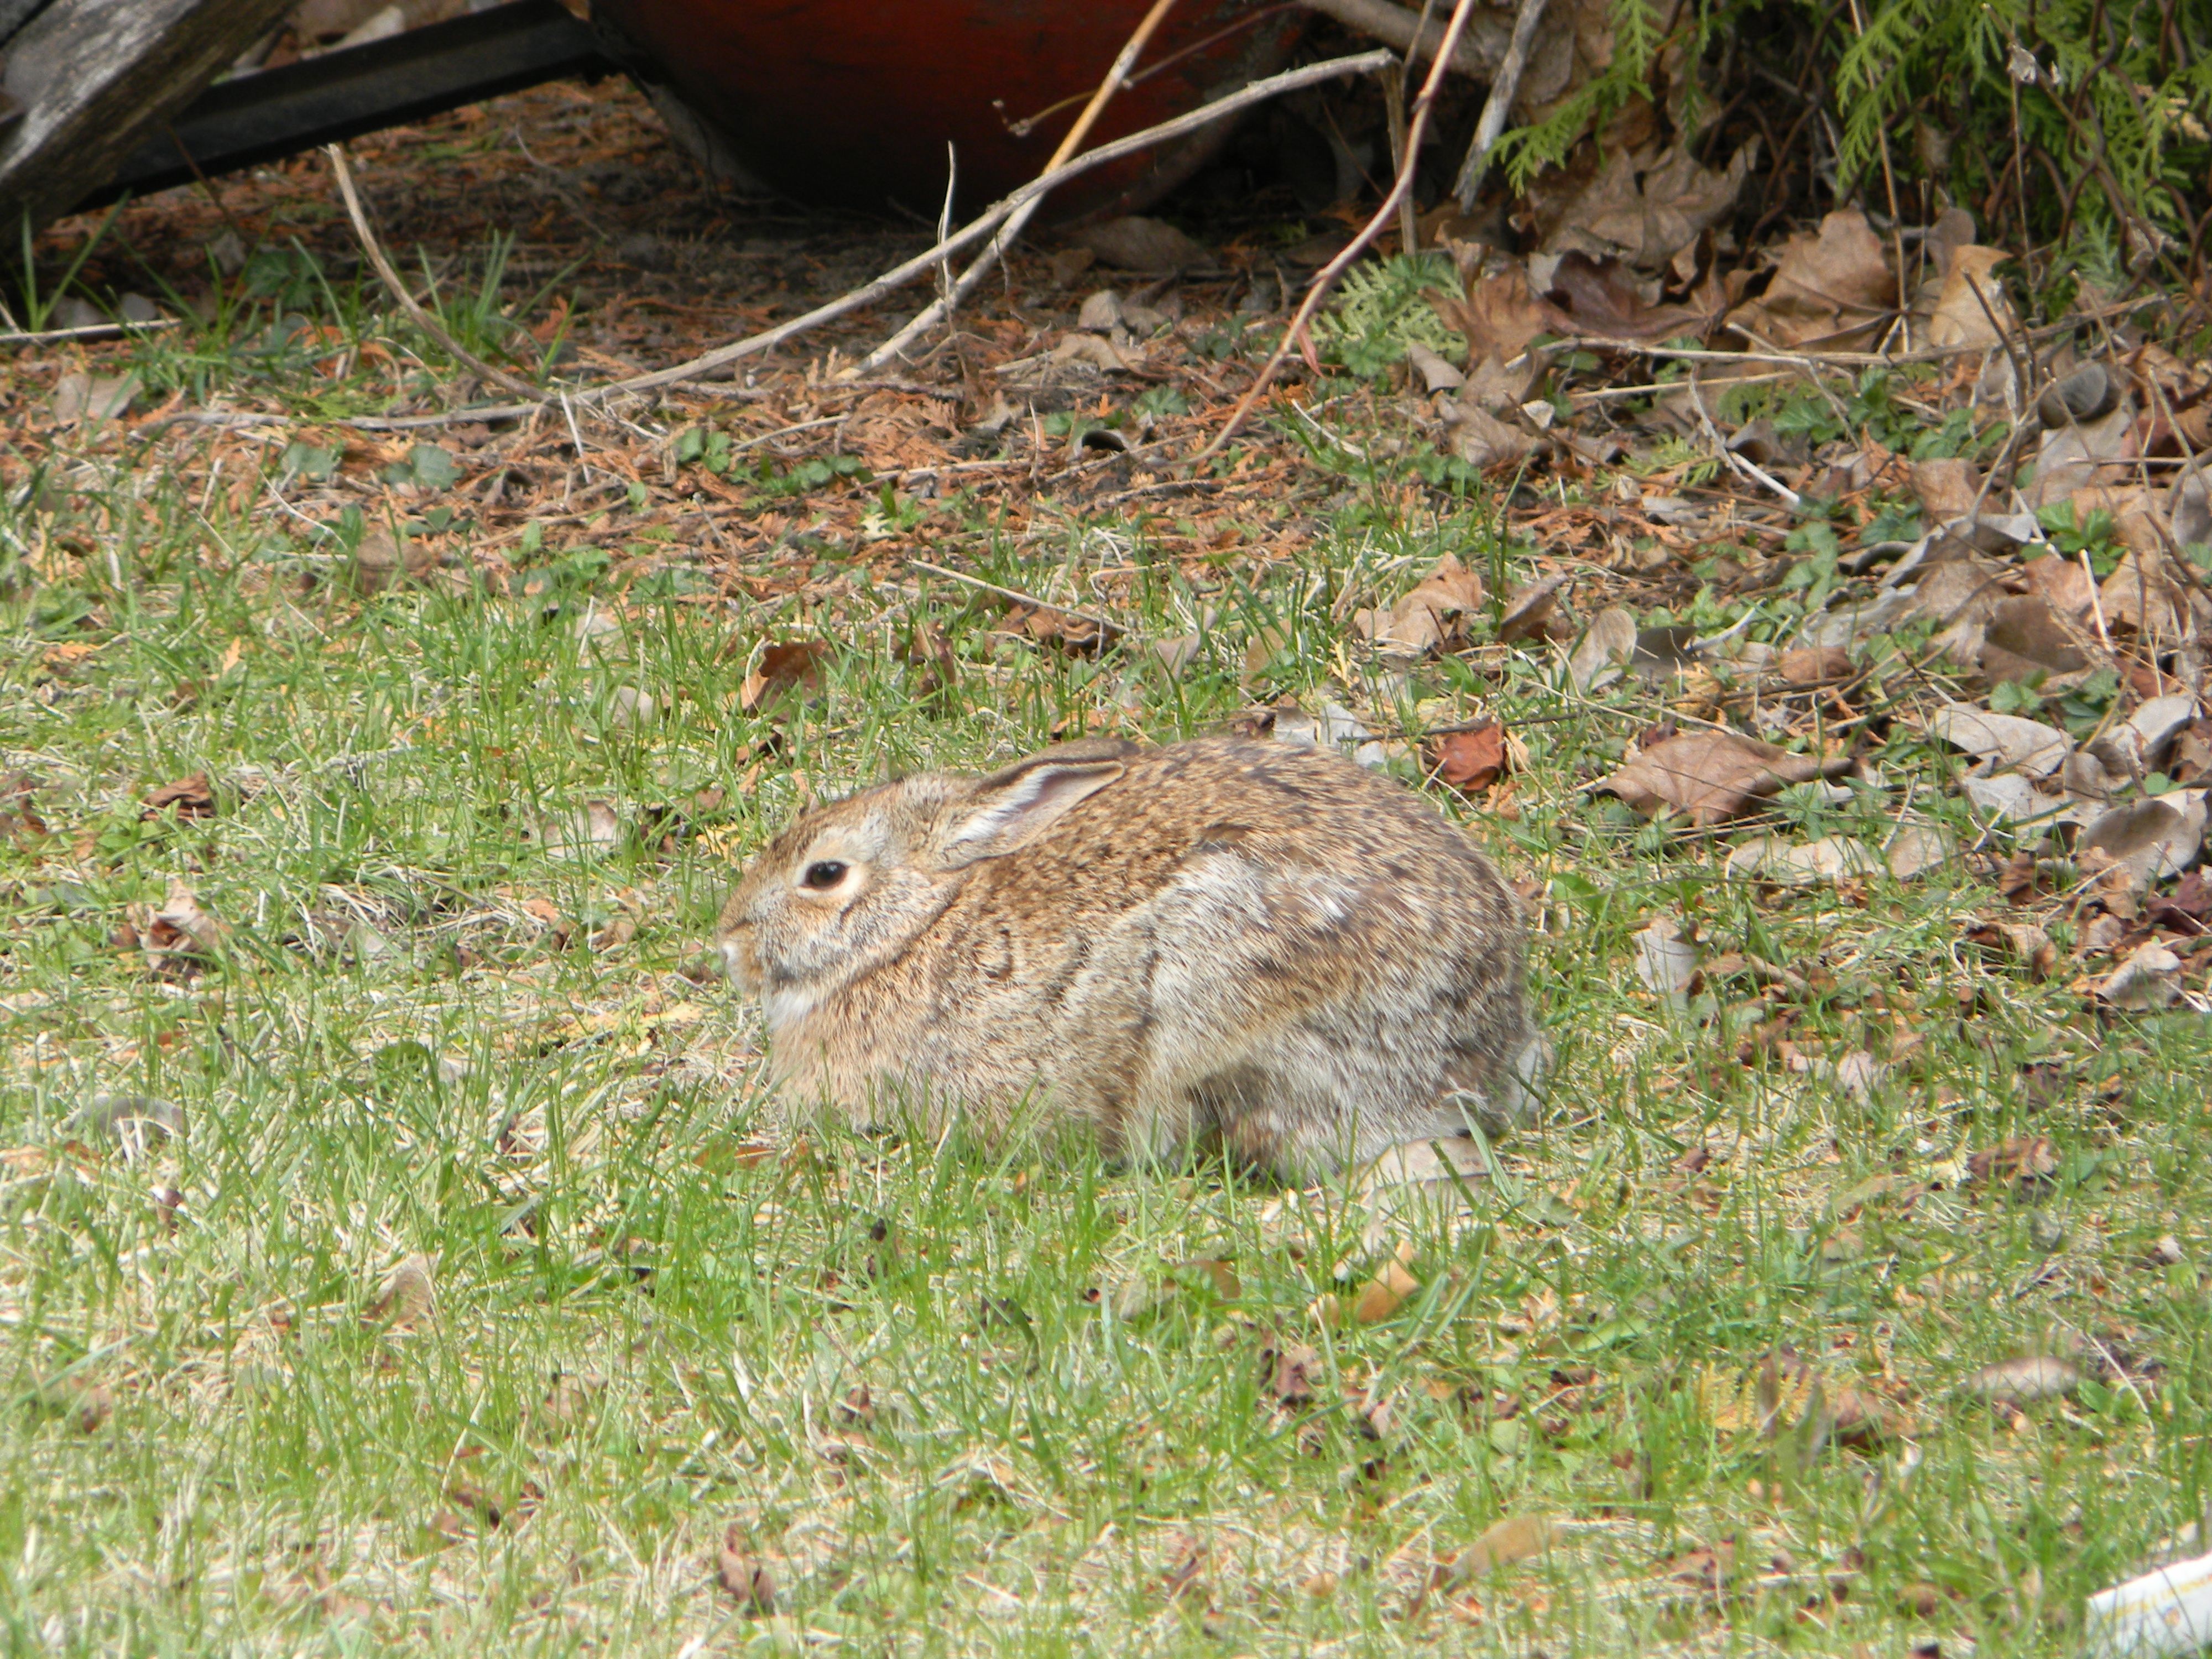 Bunny in our backyard.